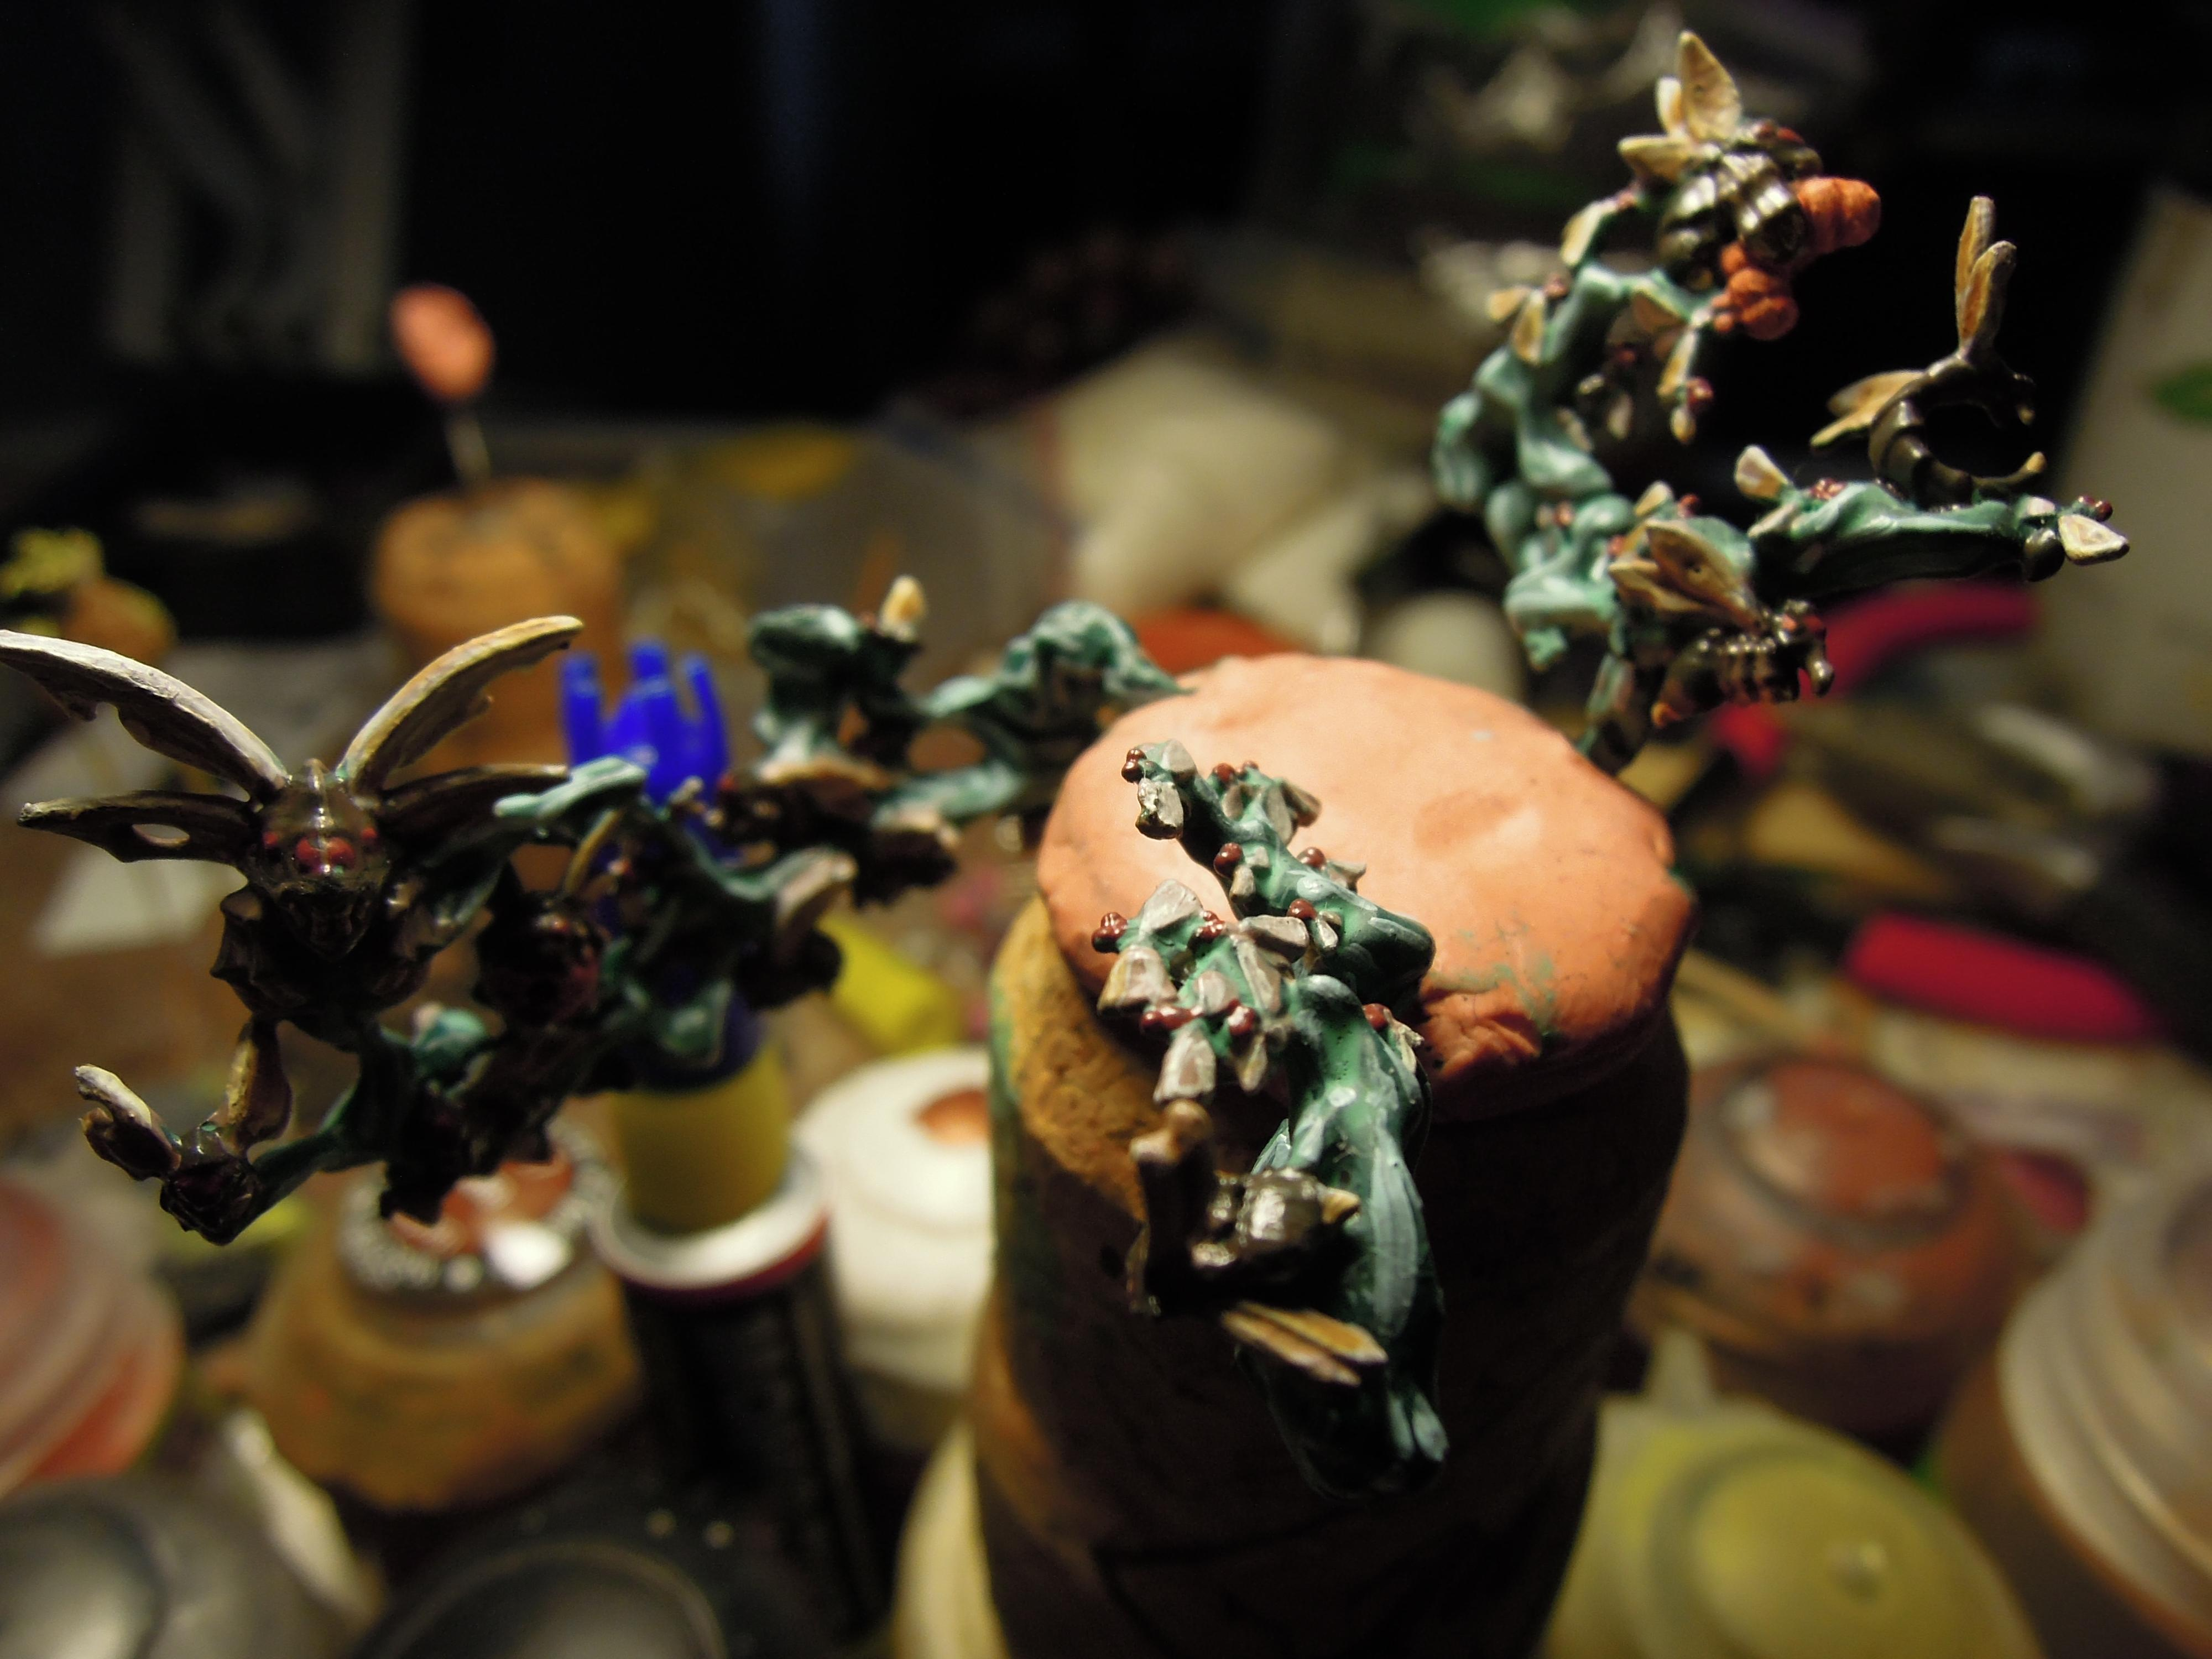 Age Of Sigmar, Blight, Boils, Buboes, Chaos, Conversion, Decay, Destroyer Hive, Disease, Flies, Fly, Glottkin, Nurgle, Pestilence, Plague, Rot, Spoilage